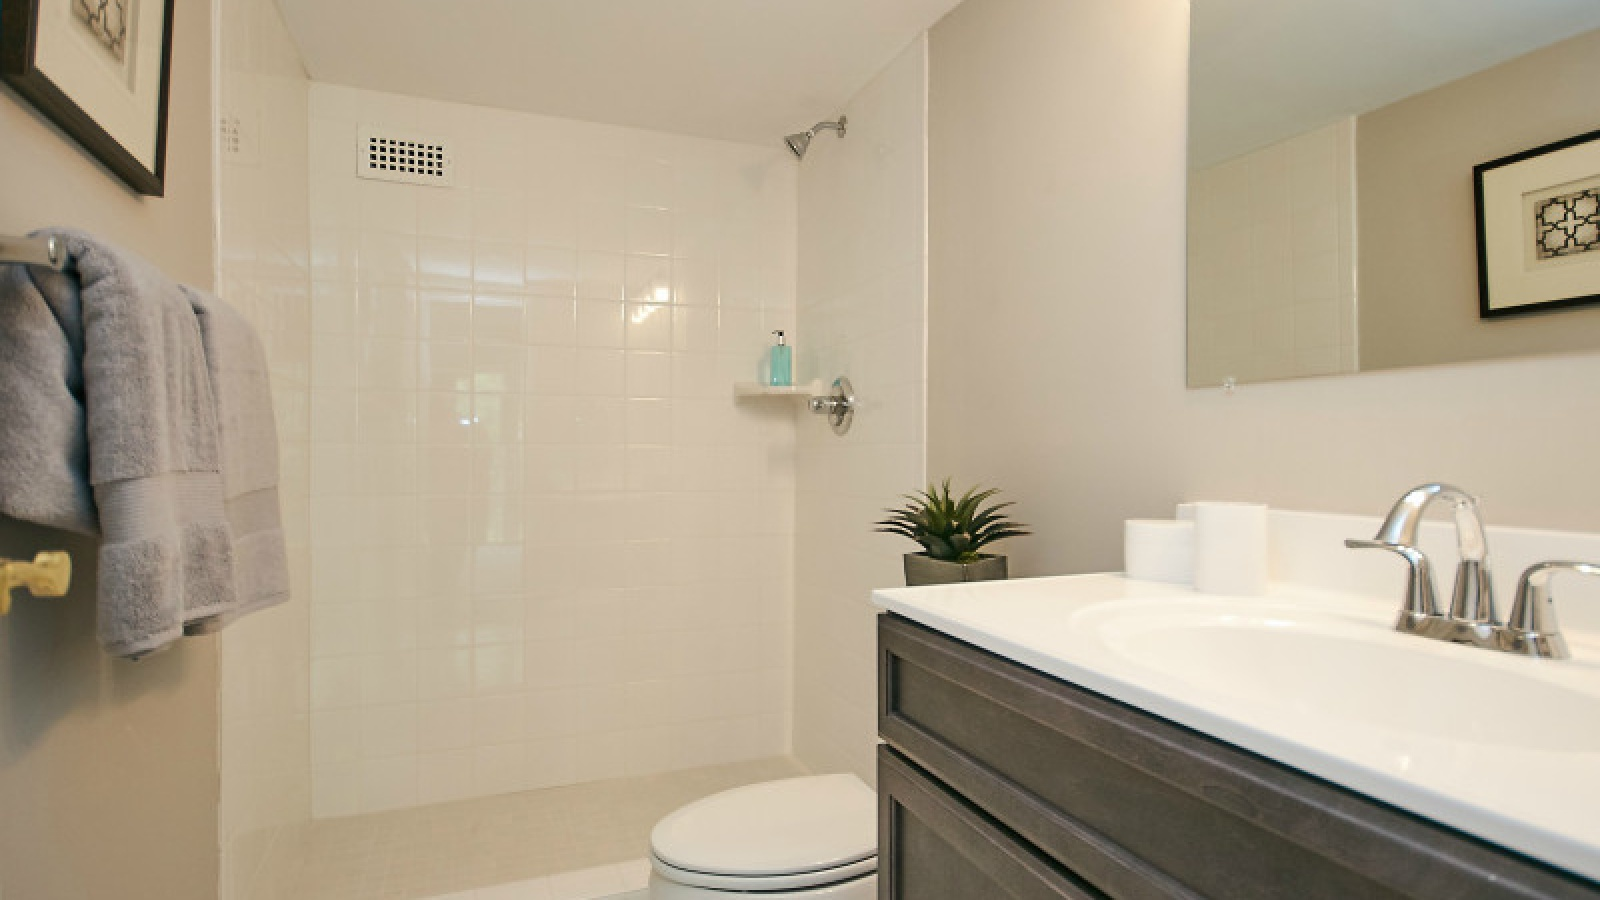 2 Bedrooms, Residential, For sale, Army Navy Drive #409, 2 Bathrooms, Listing ID 1066, Arlington , United States, 22202,